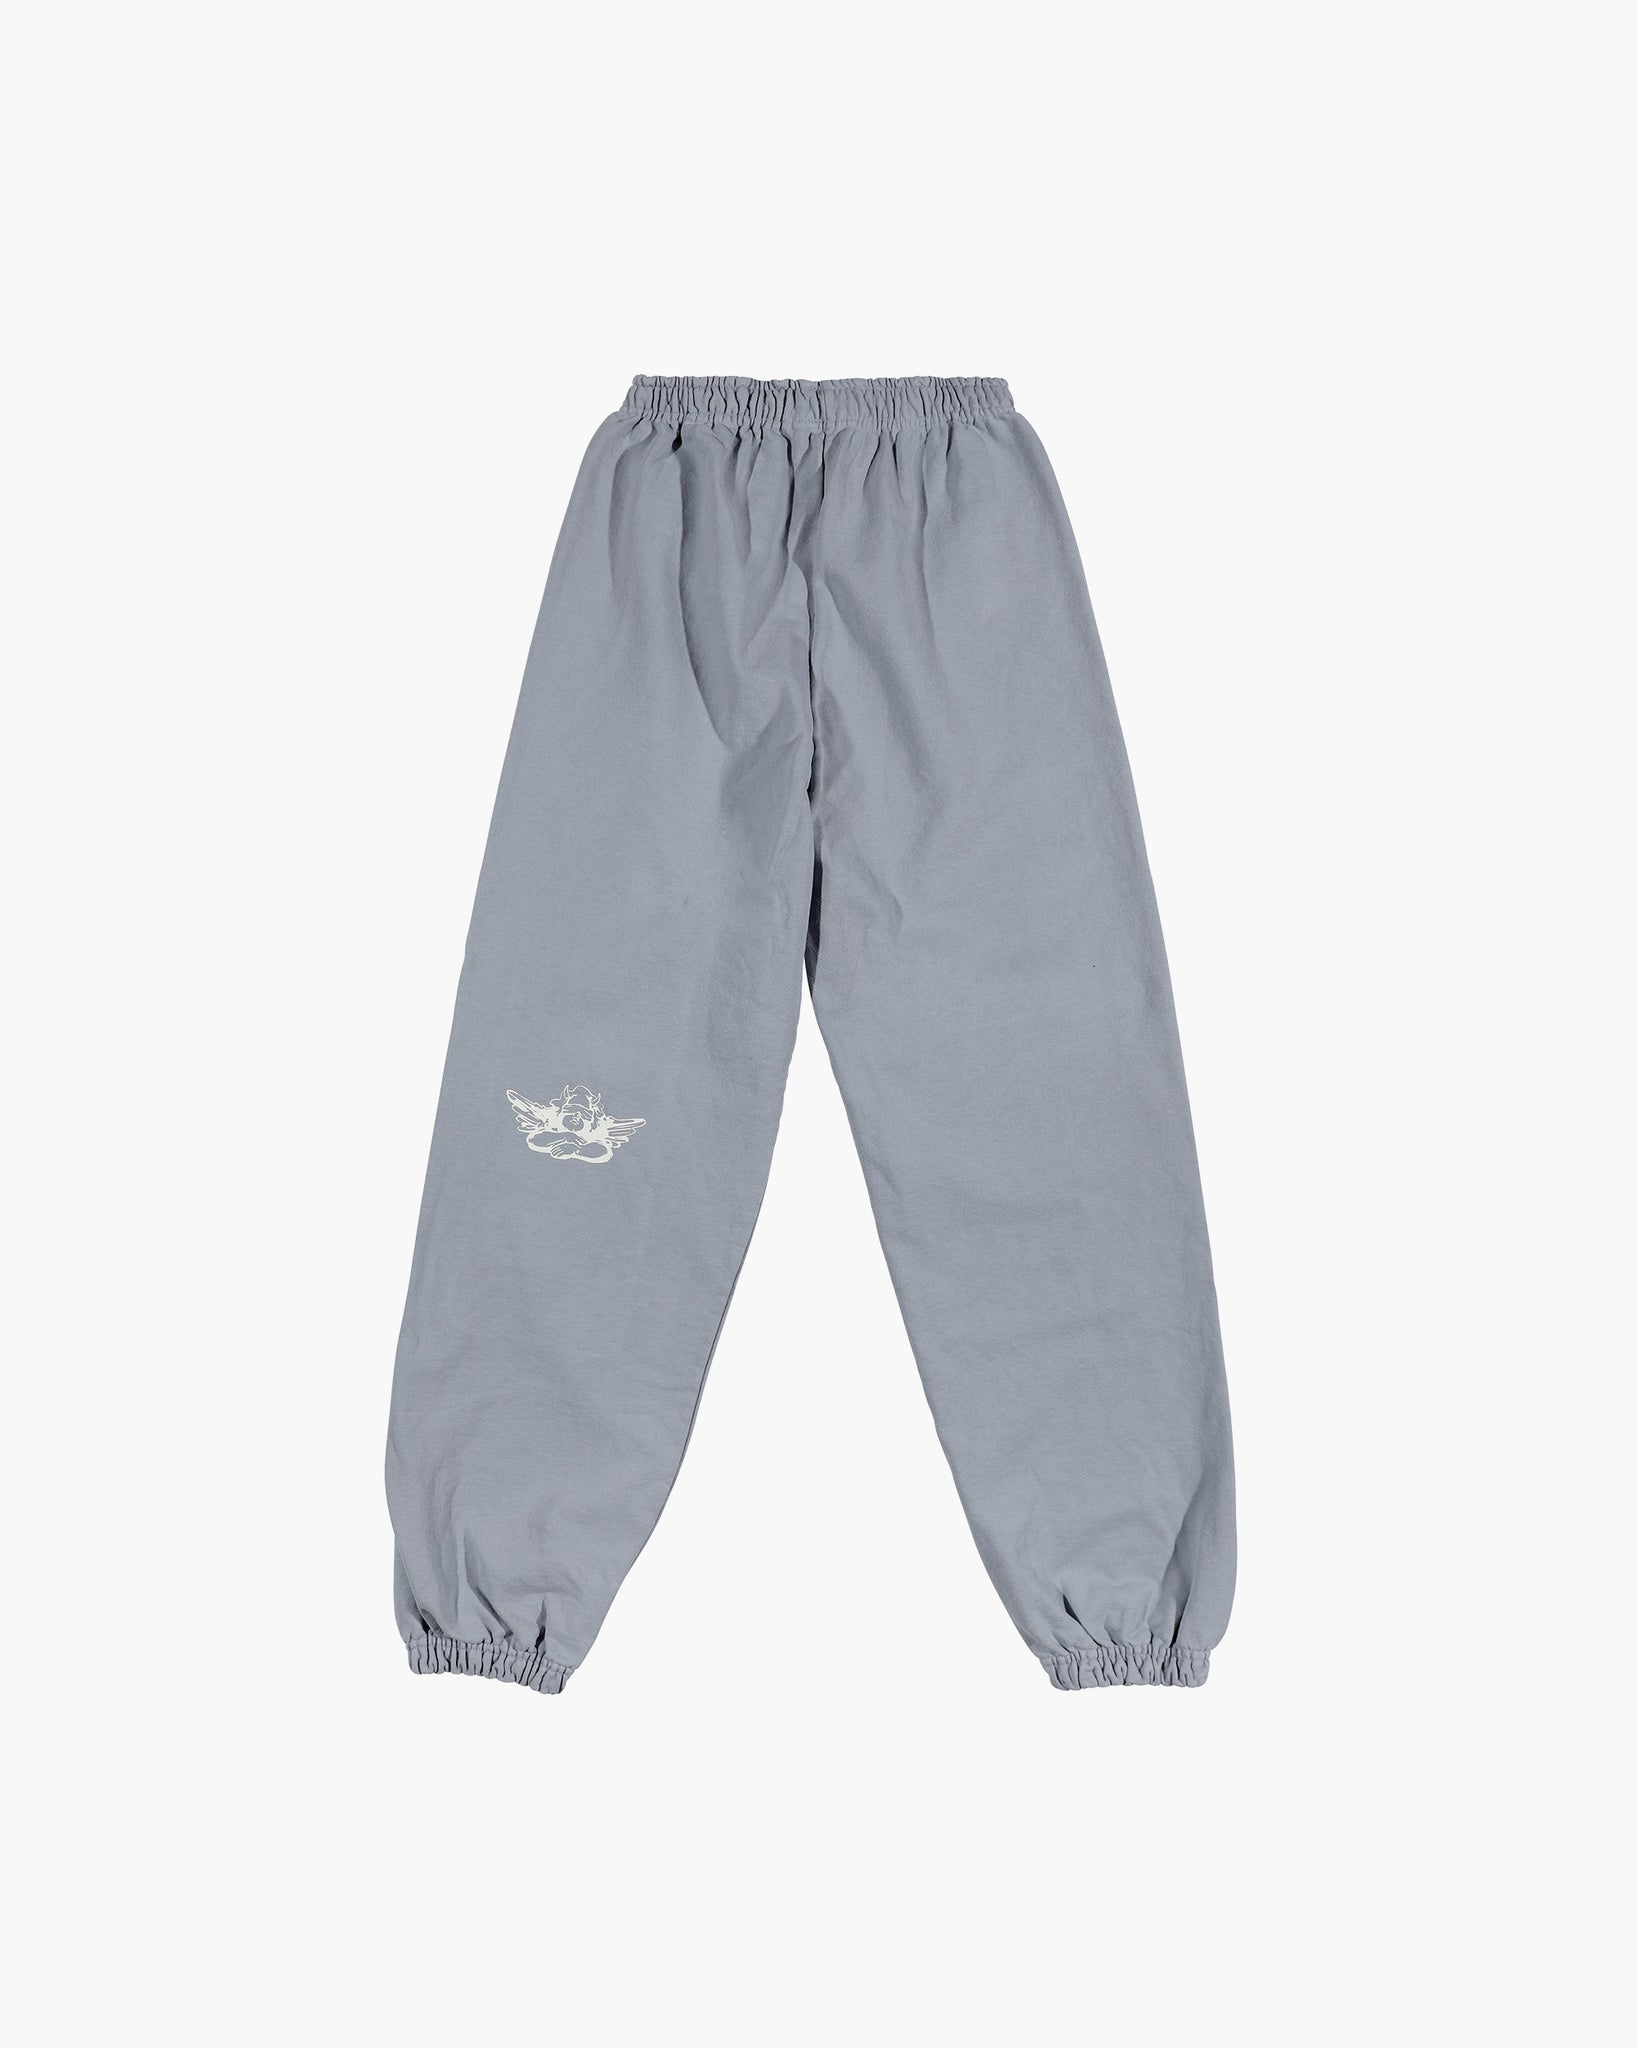 My Favorite Lies Sweatpants